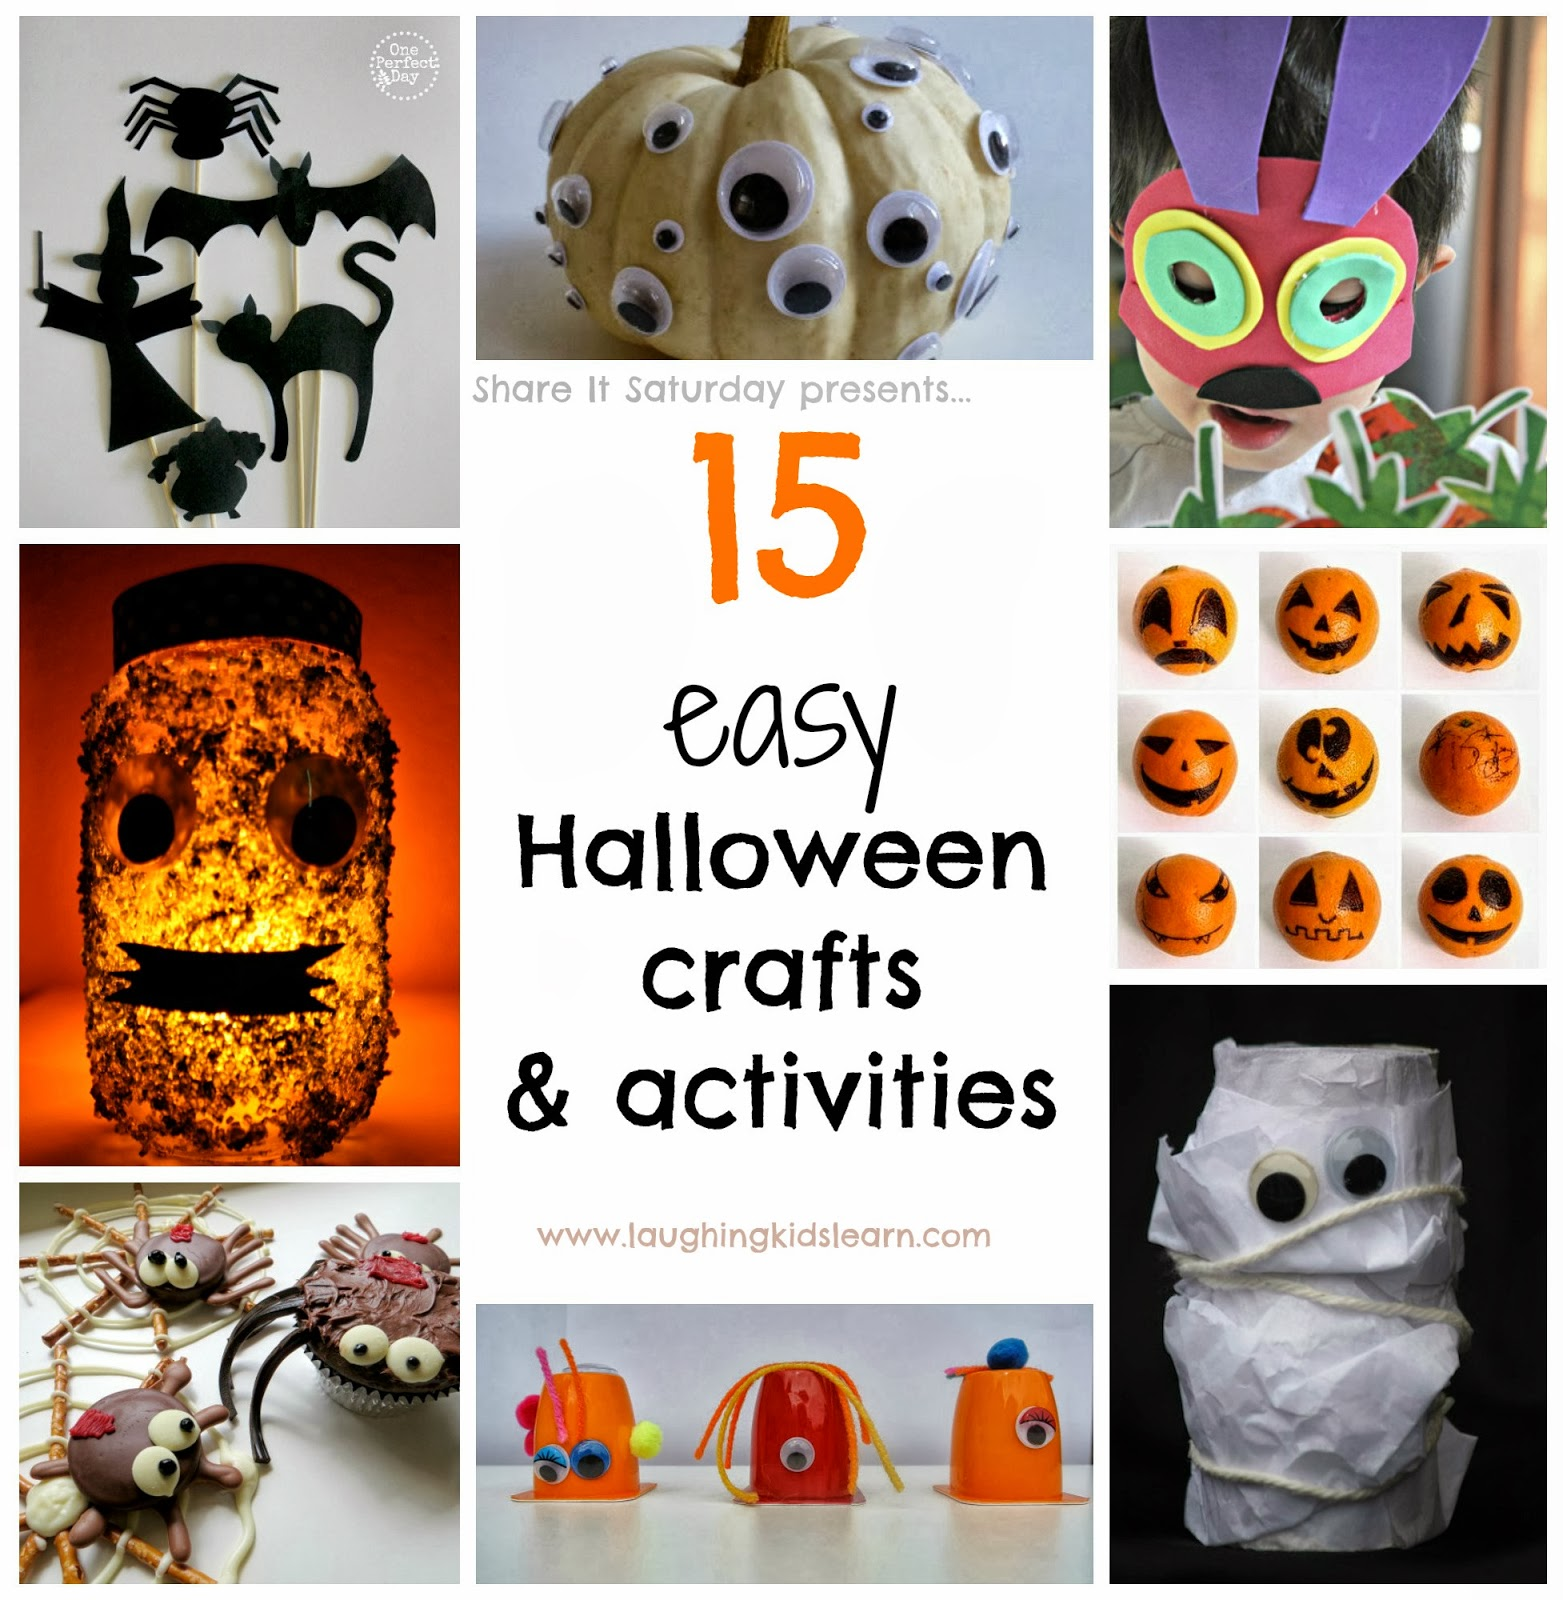 15 easy Halloween crafts and activities - Laughing Kids Learn